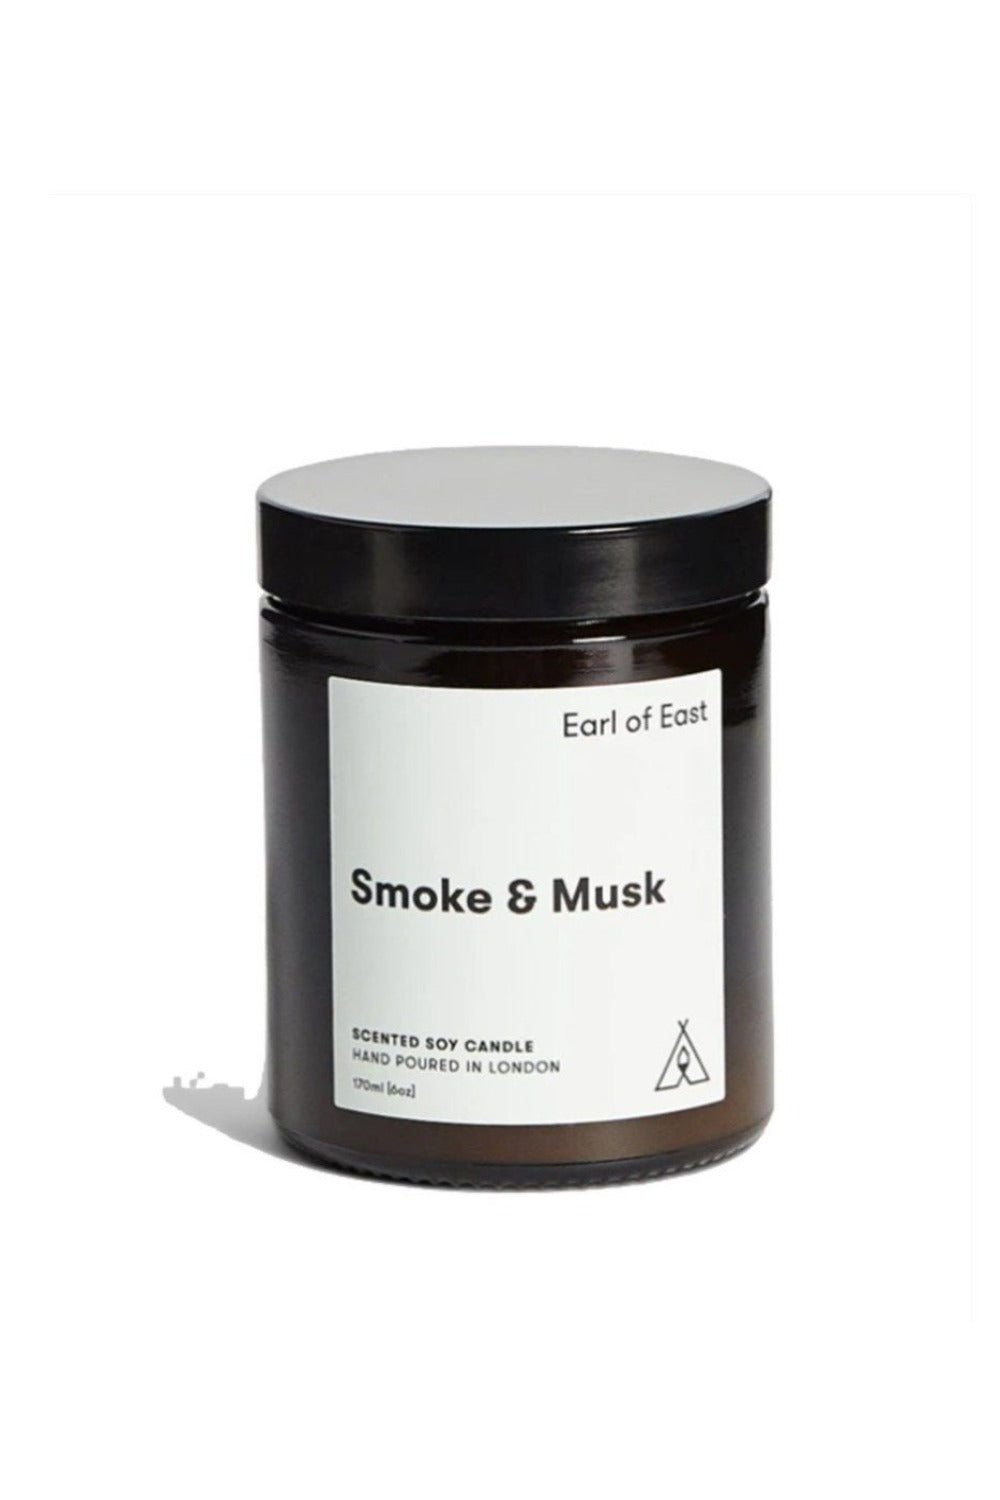 Smoke and Musk Soy Wax Candle Candles Earl of East London